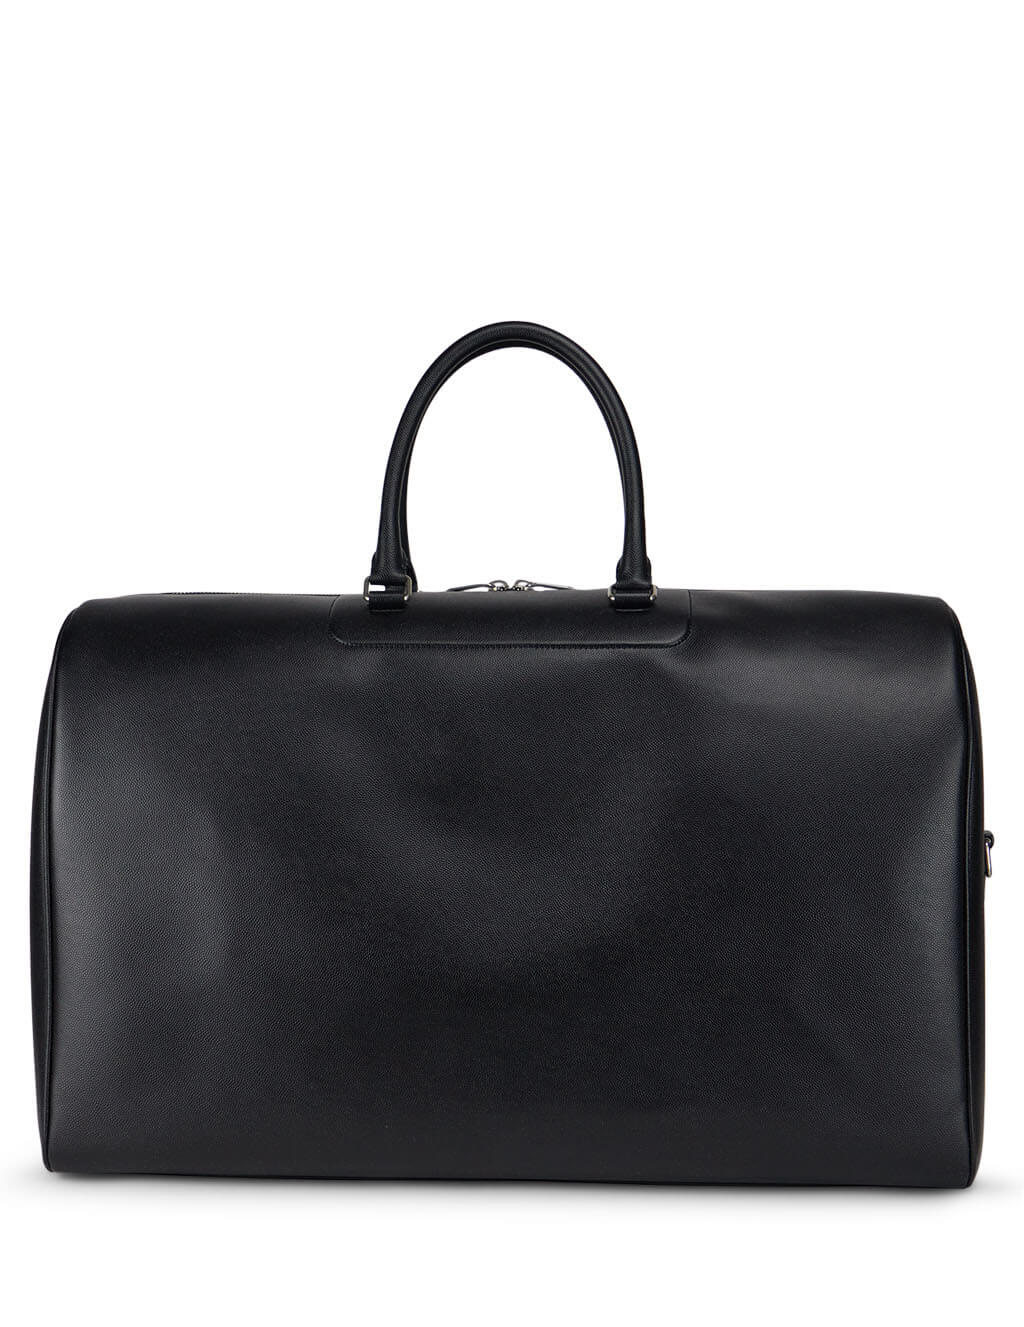 Men's Saint Laurent Duffel Carry On Bag in Black Leather. 556995BTY0E1000